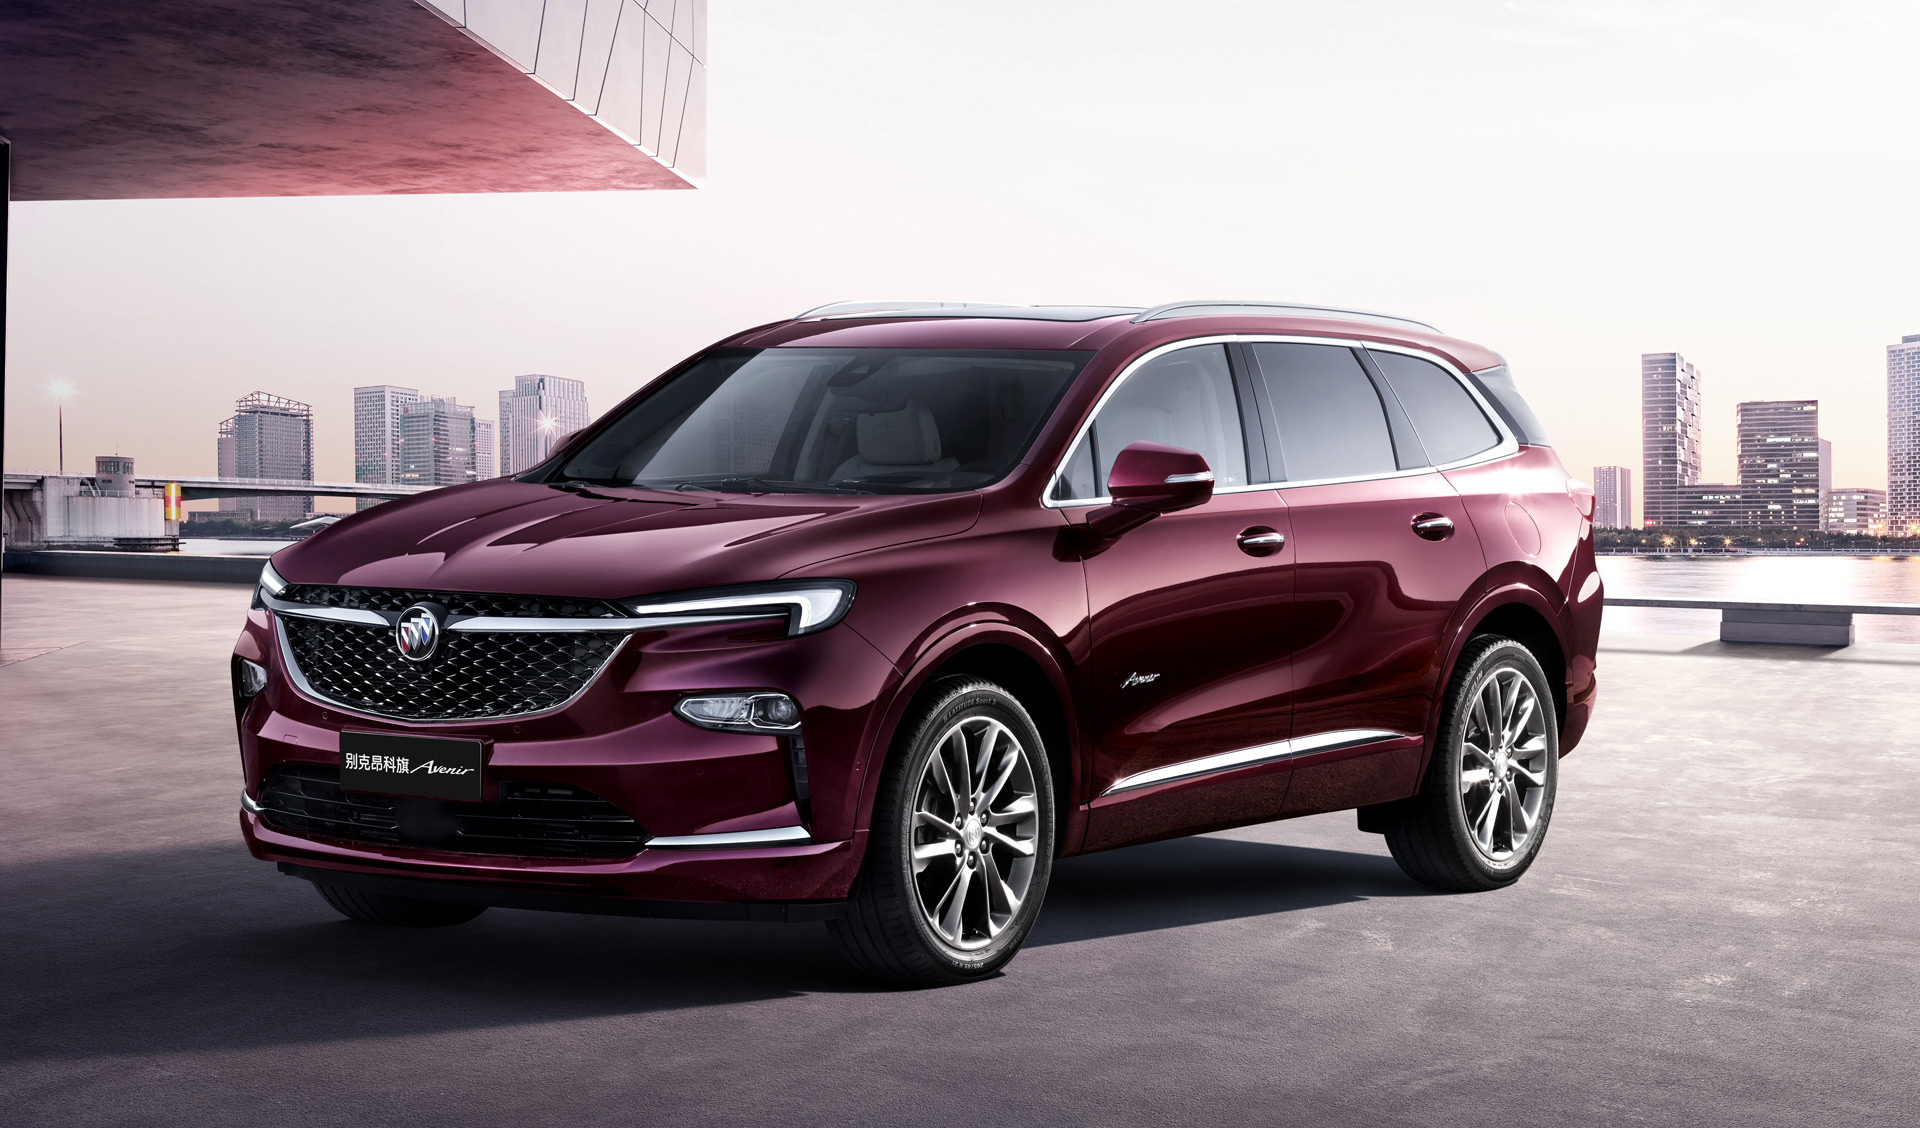 Mystery Buick 3-Row Crossover Revealed As Chinese-Market Enclave New 2022 Buick Enclave Pictures, Packages, Reliability